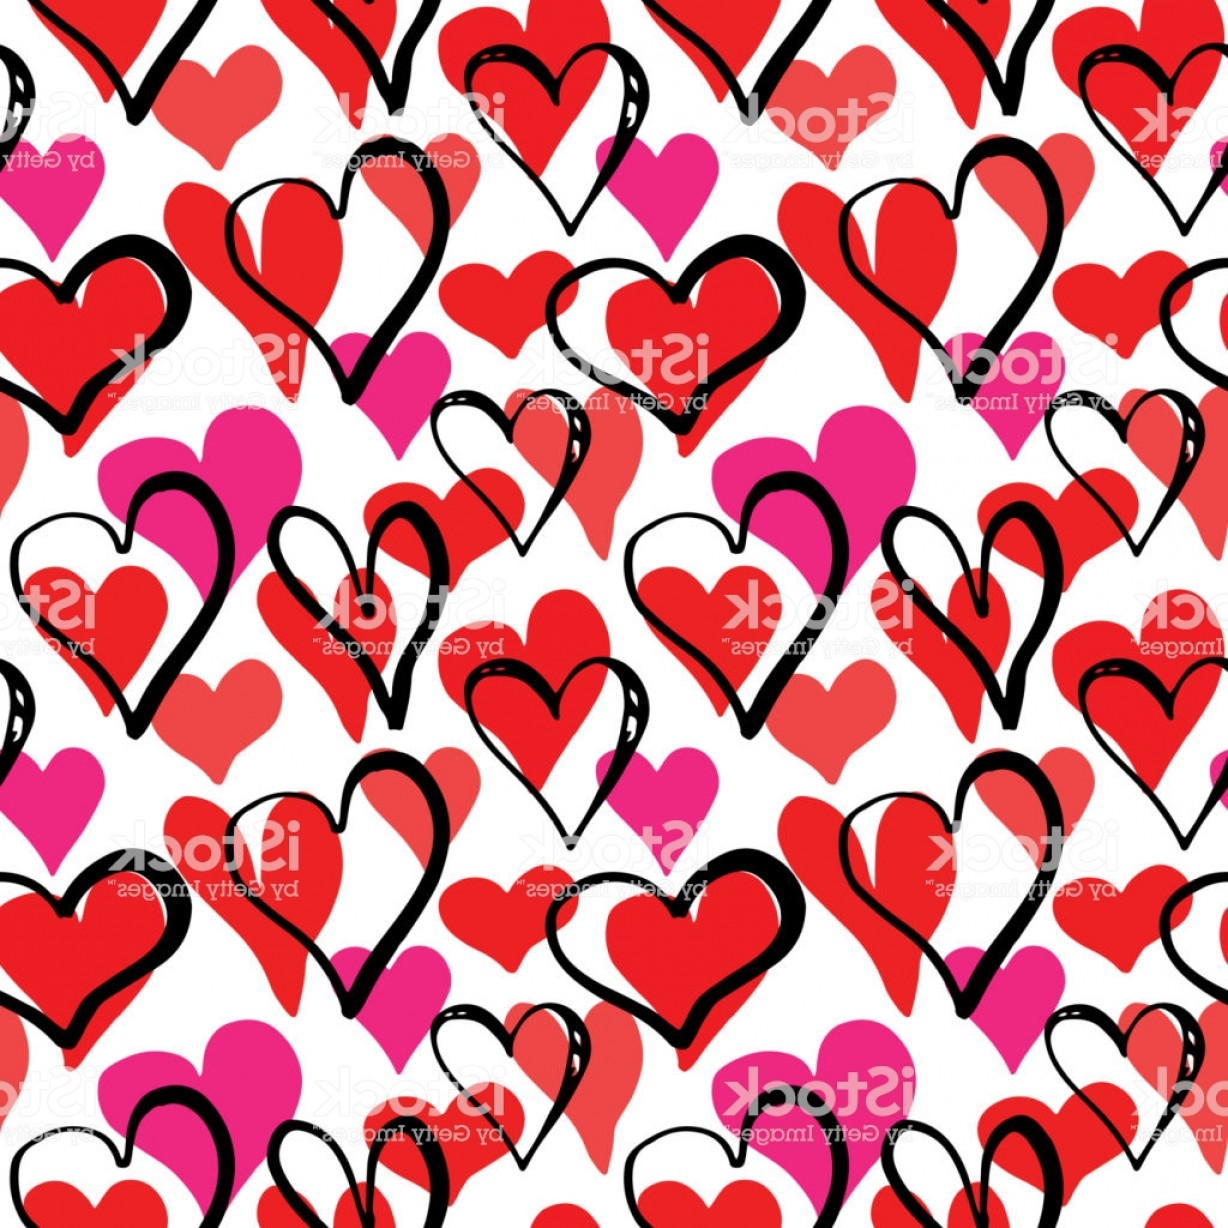 Cool Vector Hearts Pattern Symbol Pattern: Heart Symbol Seamless Pattern Vector Illustration Hand Drawn Sketch Doodle Gm